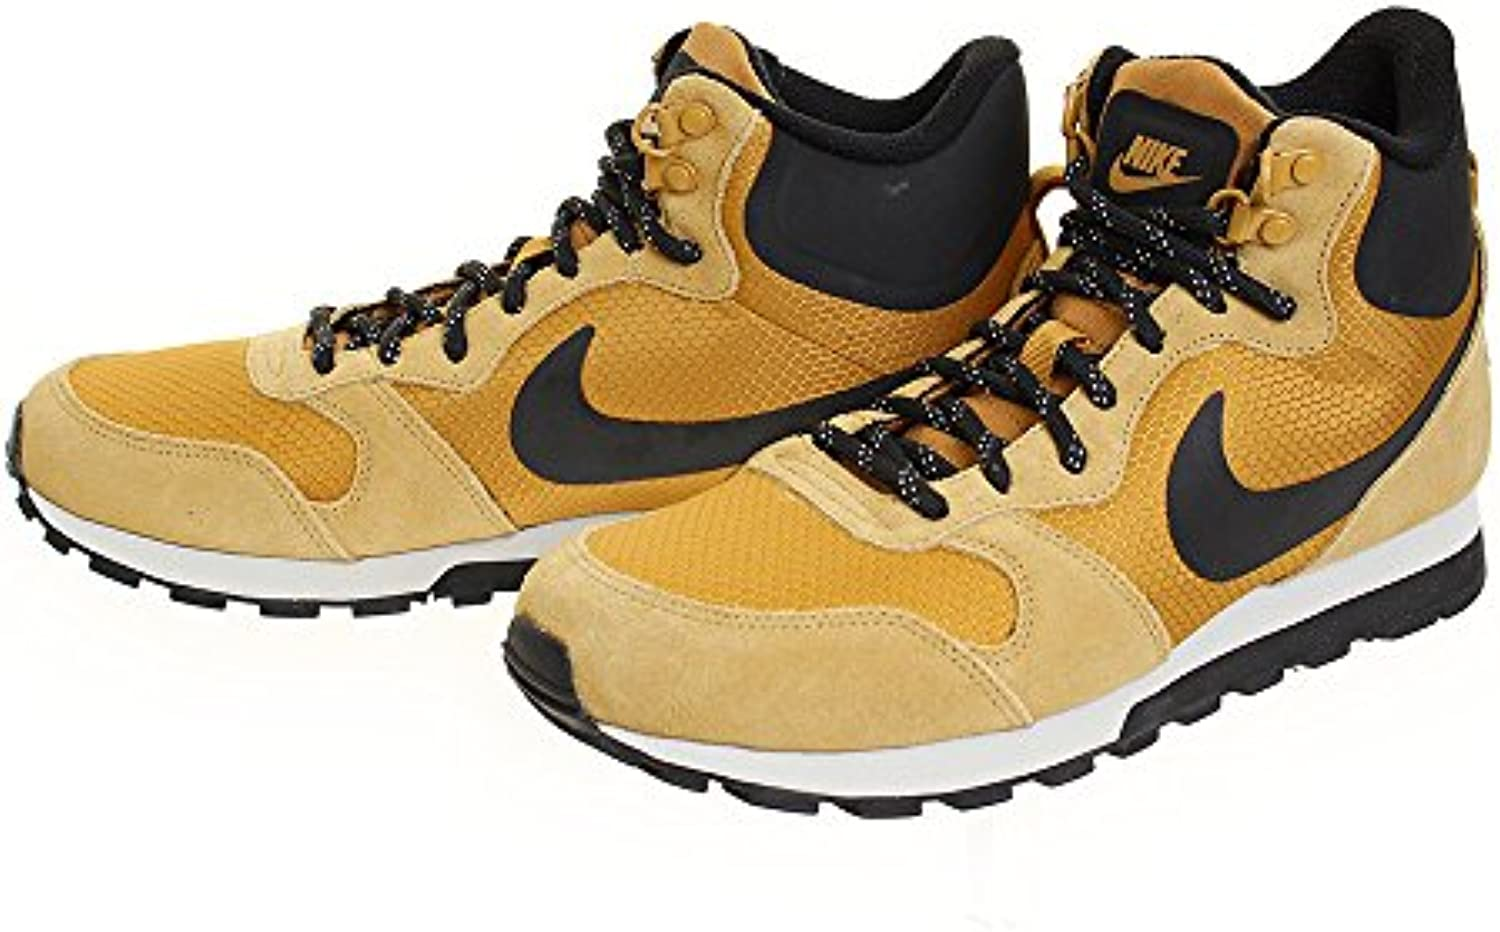 Gentlemen/Ladies market NIKE Zapatillas_844864-701 New varieties are launched Good market Gentlemen/Ladies Elegant and solemn 5e7dd0